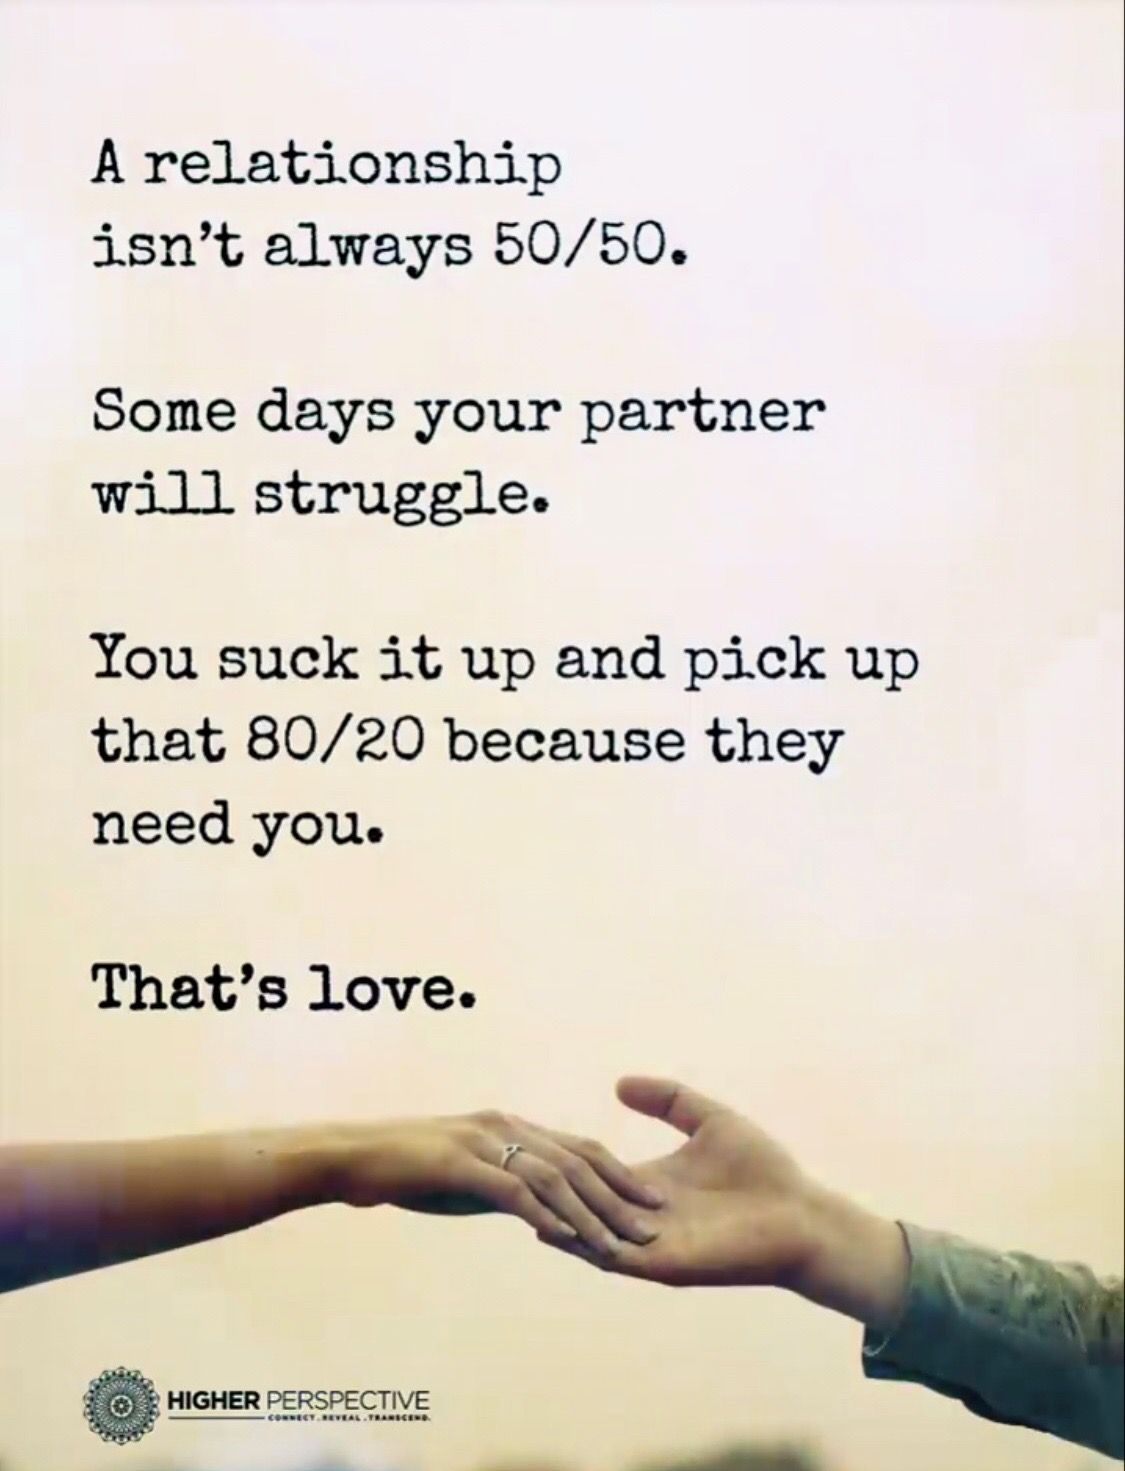 The Only Thing Is A Relationship Is 100 100 Not 50 50 You Have